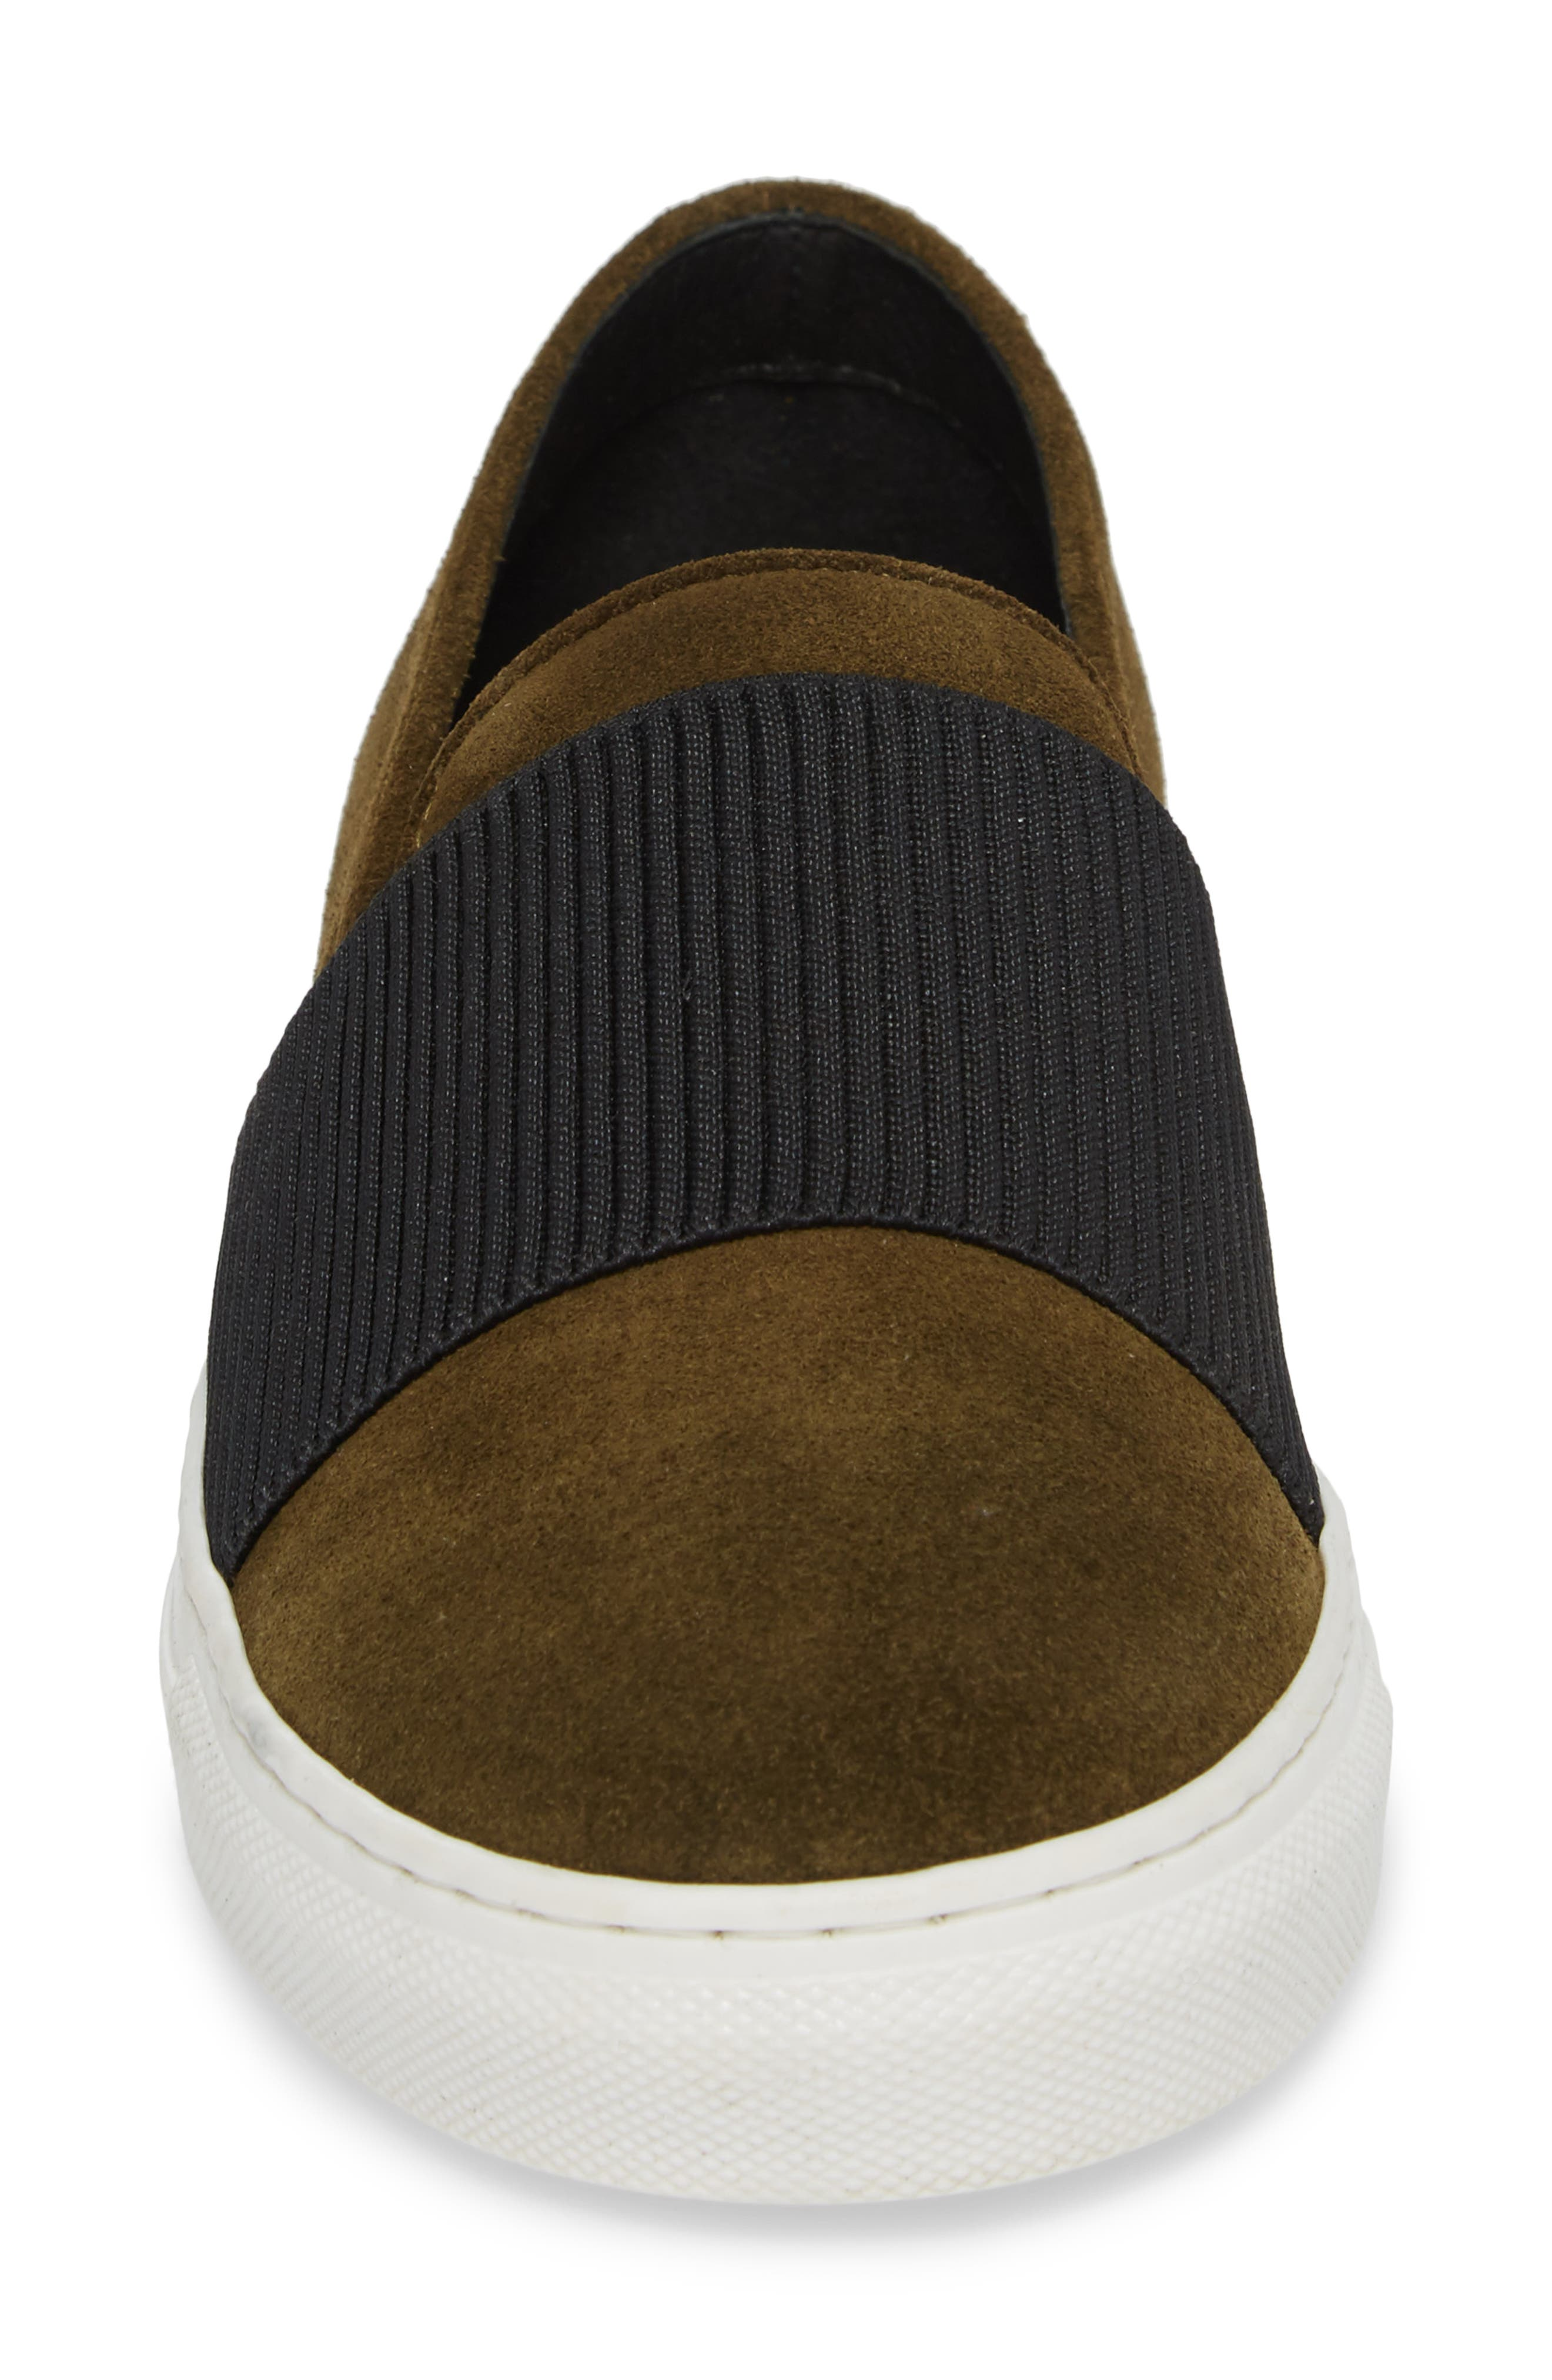 Otto Slip-On Sneaker,                             Alternate thumbnail 4, color,                             MILITARY PRINT SUEDE